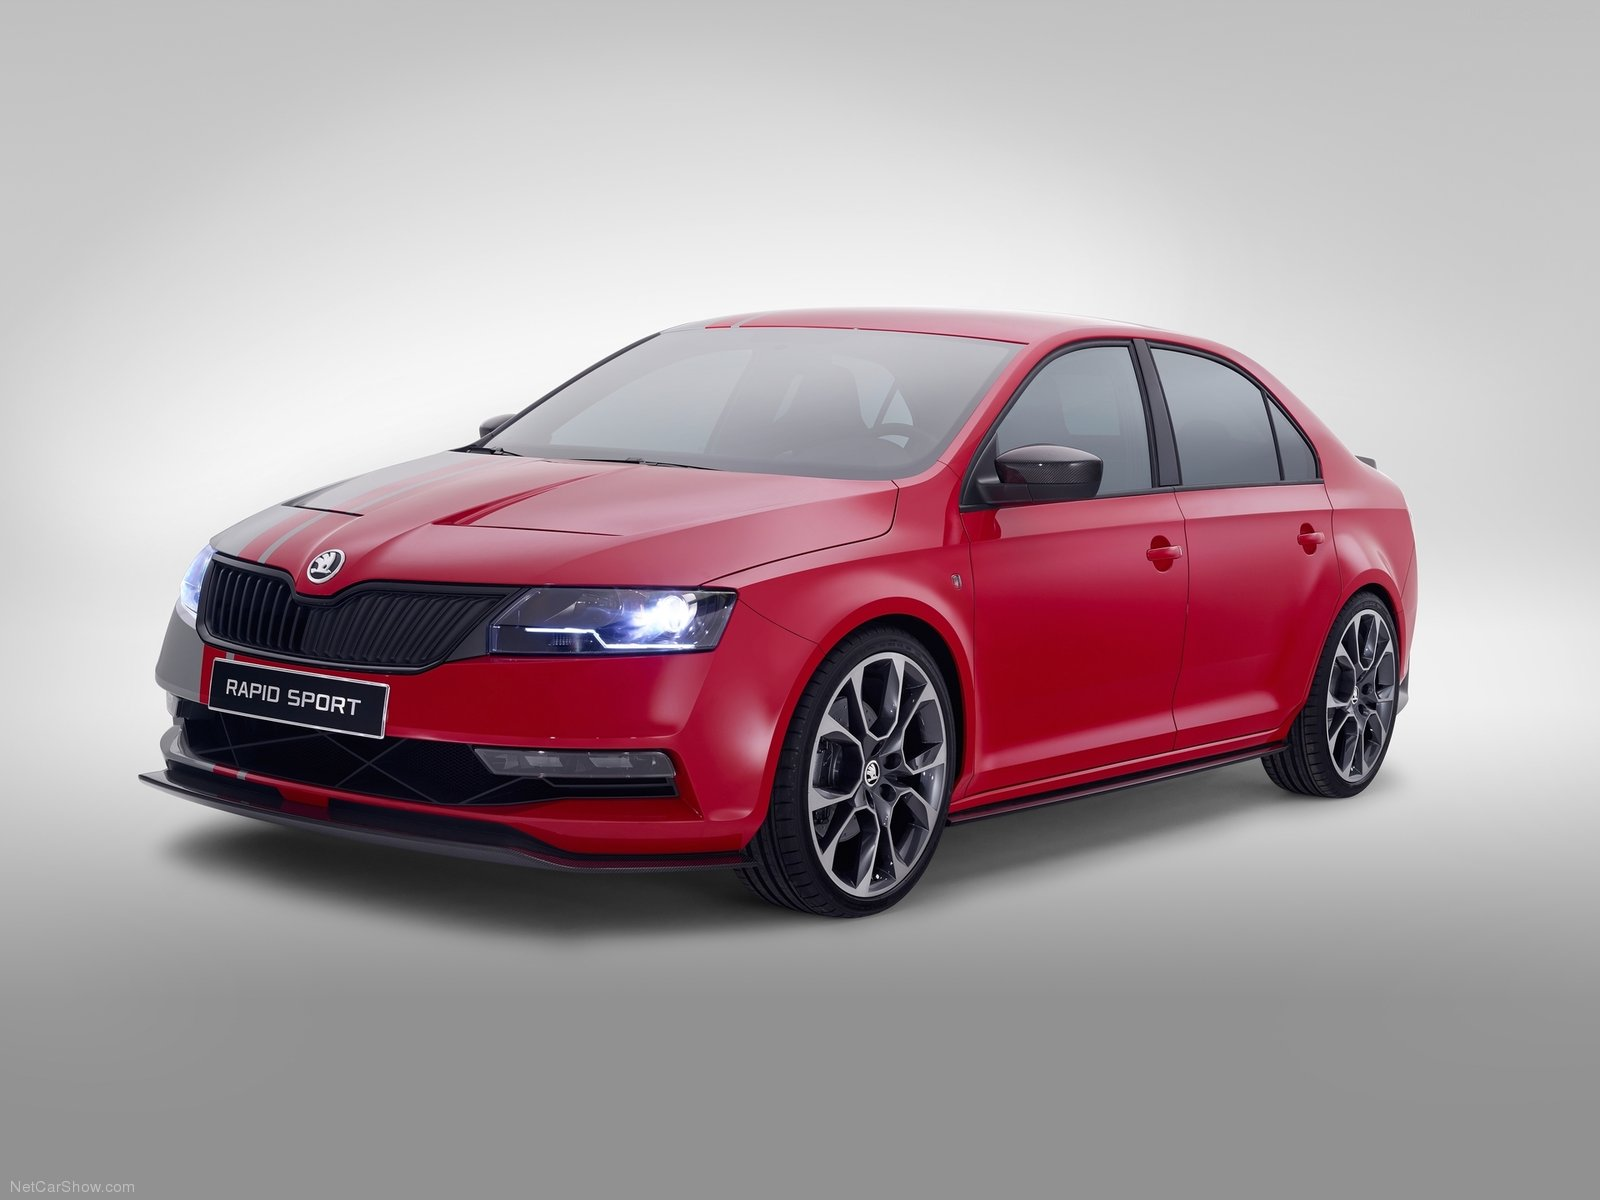 2013 skoda rapid sport concept review spec release date picture and price cargers. Black Bedroom Furniture Sets. Home Design Ideas